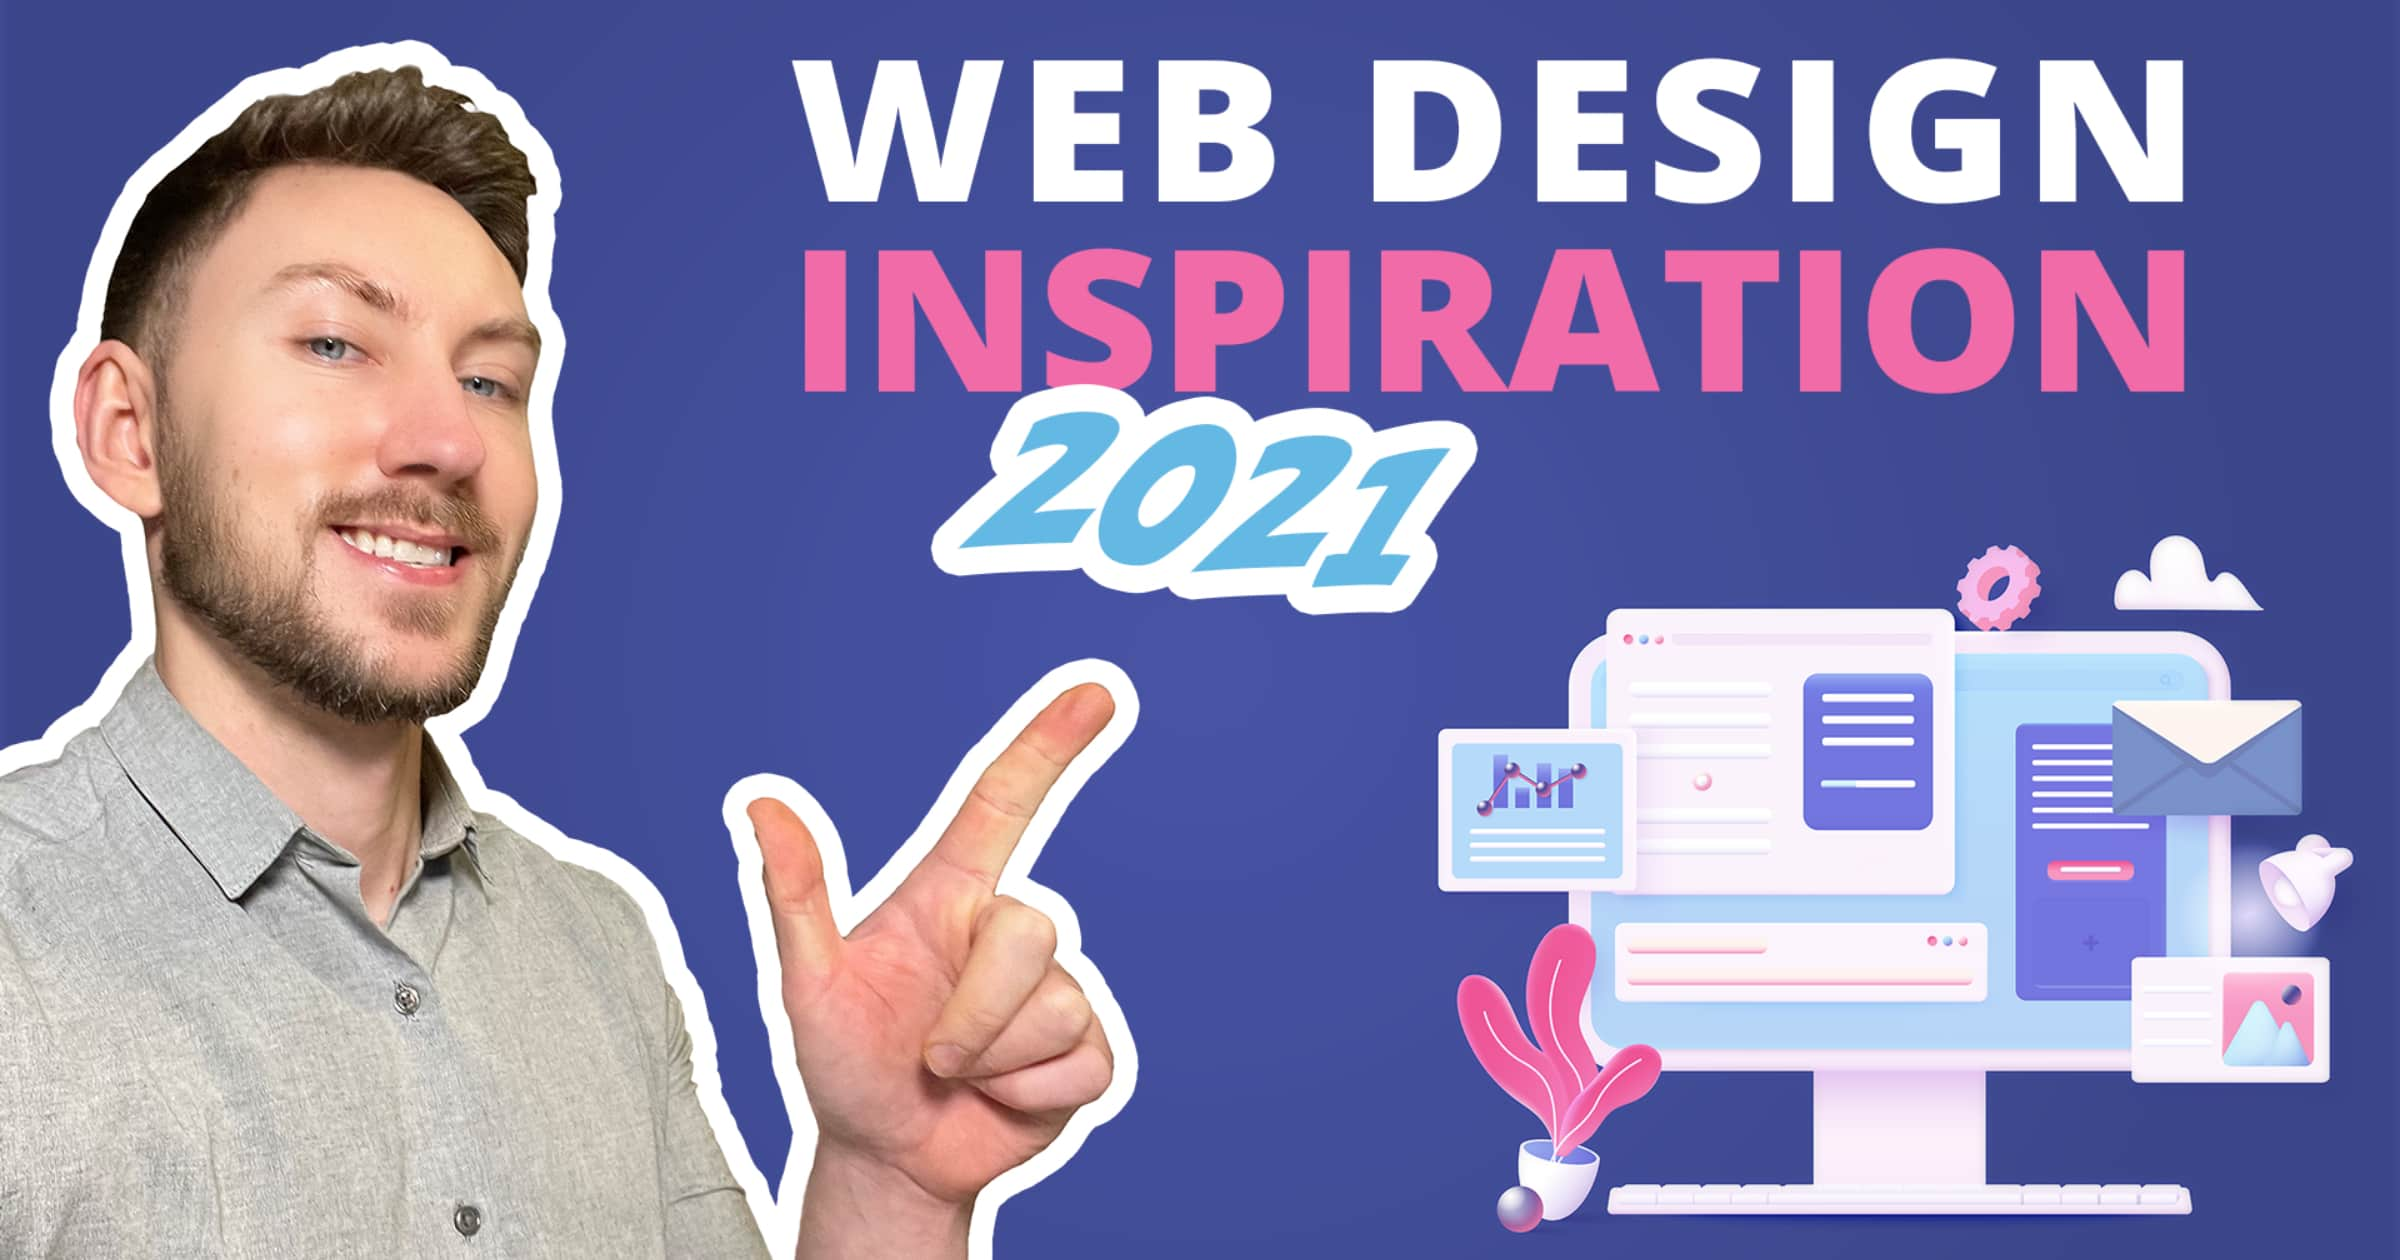 A picture of Aidan Quigley pointing at the words 'Web Design Inspiration 2021' with a 3d illustration of a computer and UI elements in the bottom right hand corner.